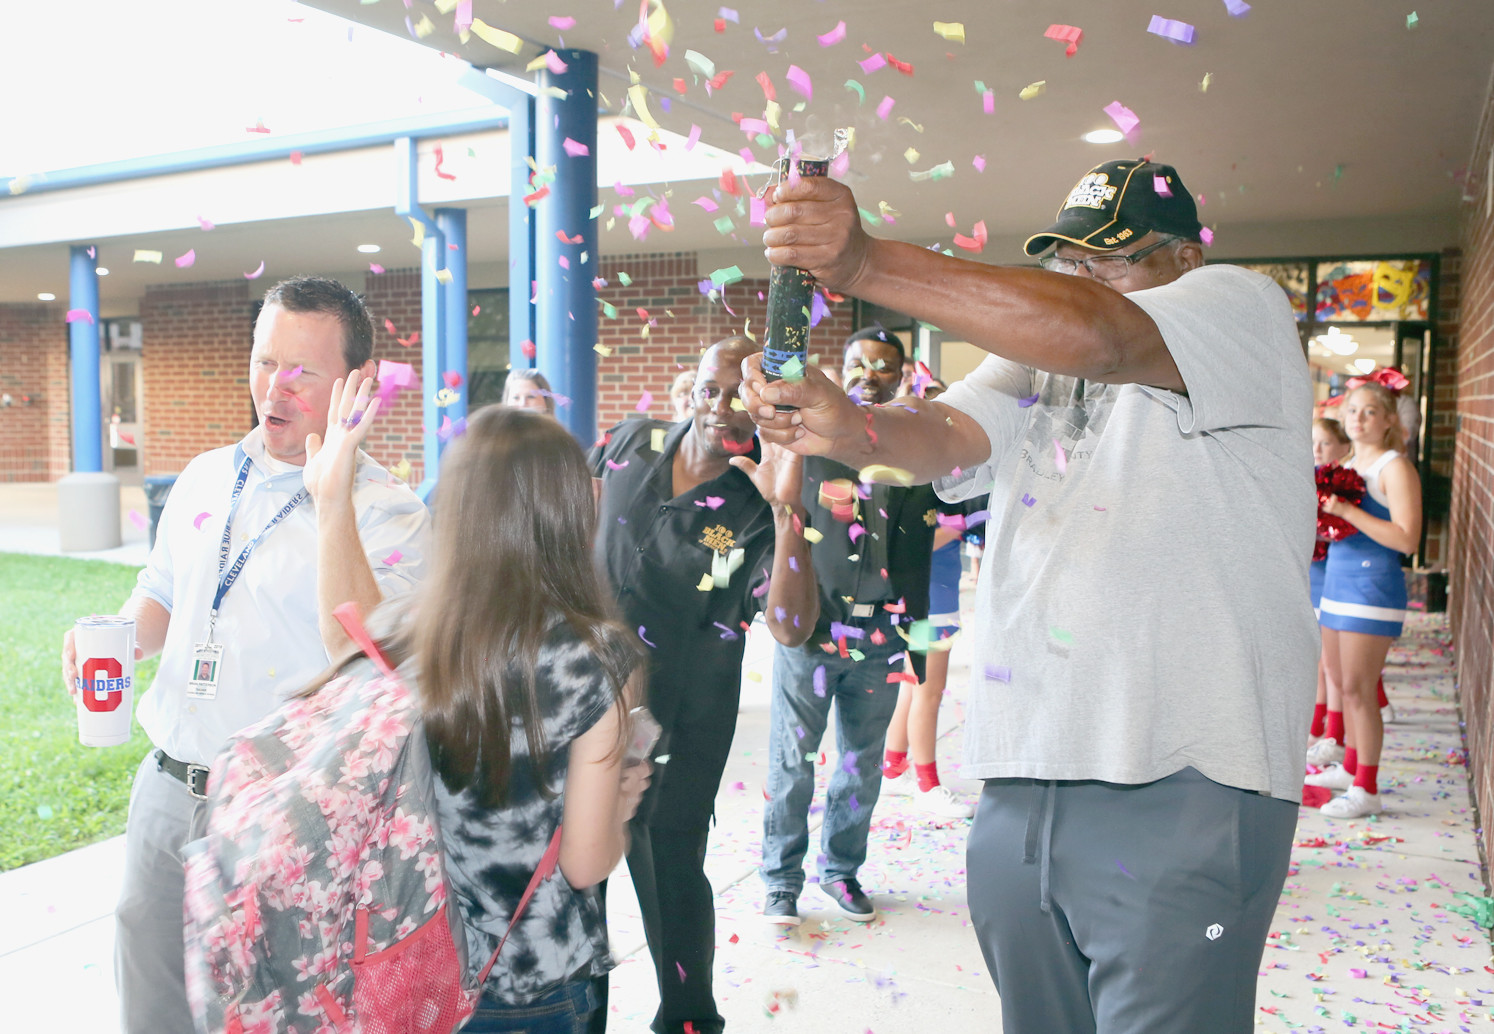 DON HUMES, a member of 100 Black Men of Bradley County Inc., right, pops a confetti cannon as some of the students are dropped off by car early Tuesday morning for the  first day of the 2018-19 school year at Cleveland Middle School.  Also cheering on the students, from left, are sixth-grade math teacher Brian Patterson, Jonathan Porter and Chuck Swafford.